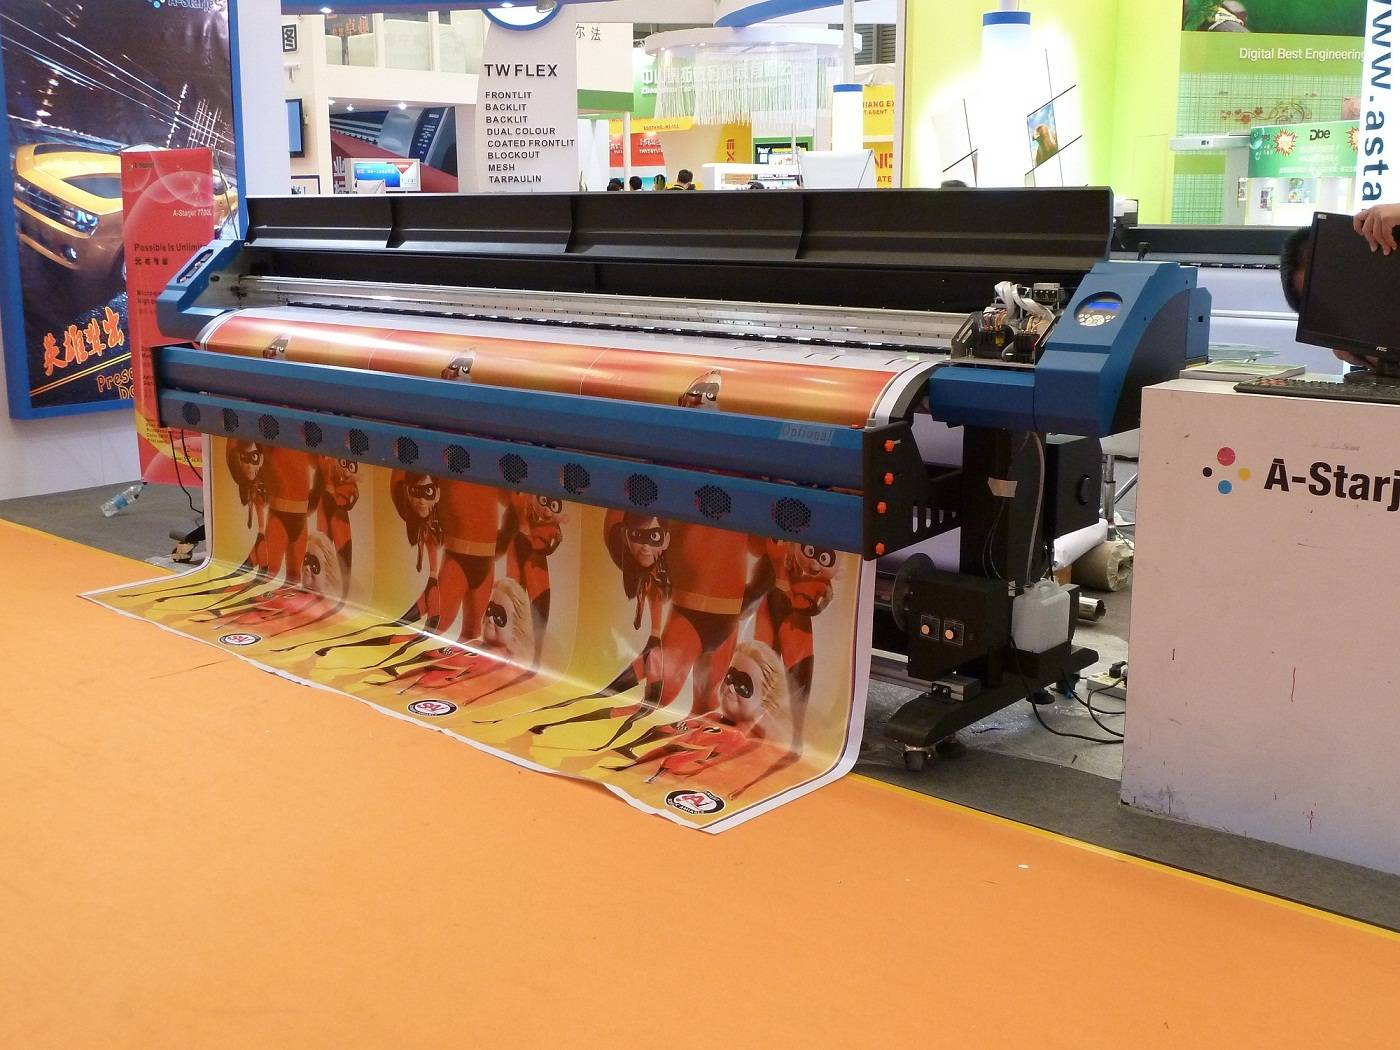 3.2M Eco Solvent printer in Bulk Ink System with 2 DX7 for printing flex banner